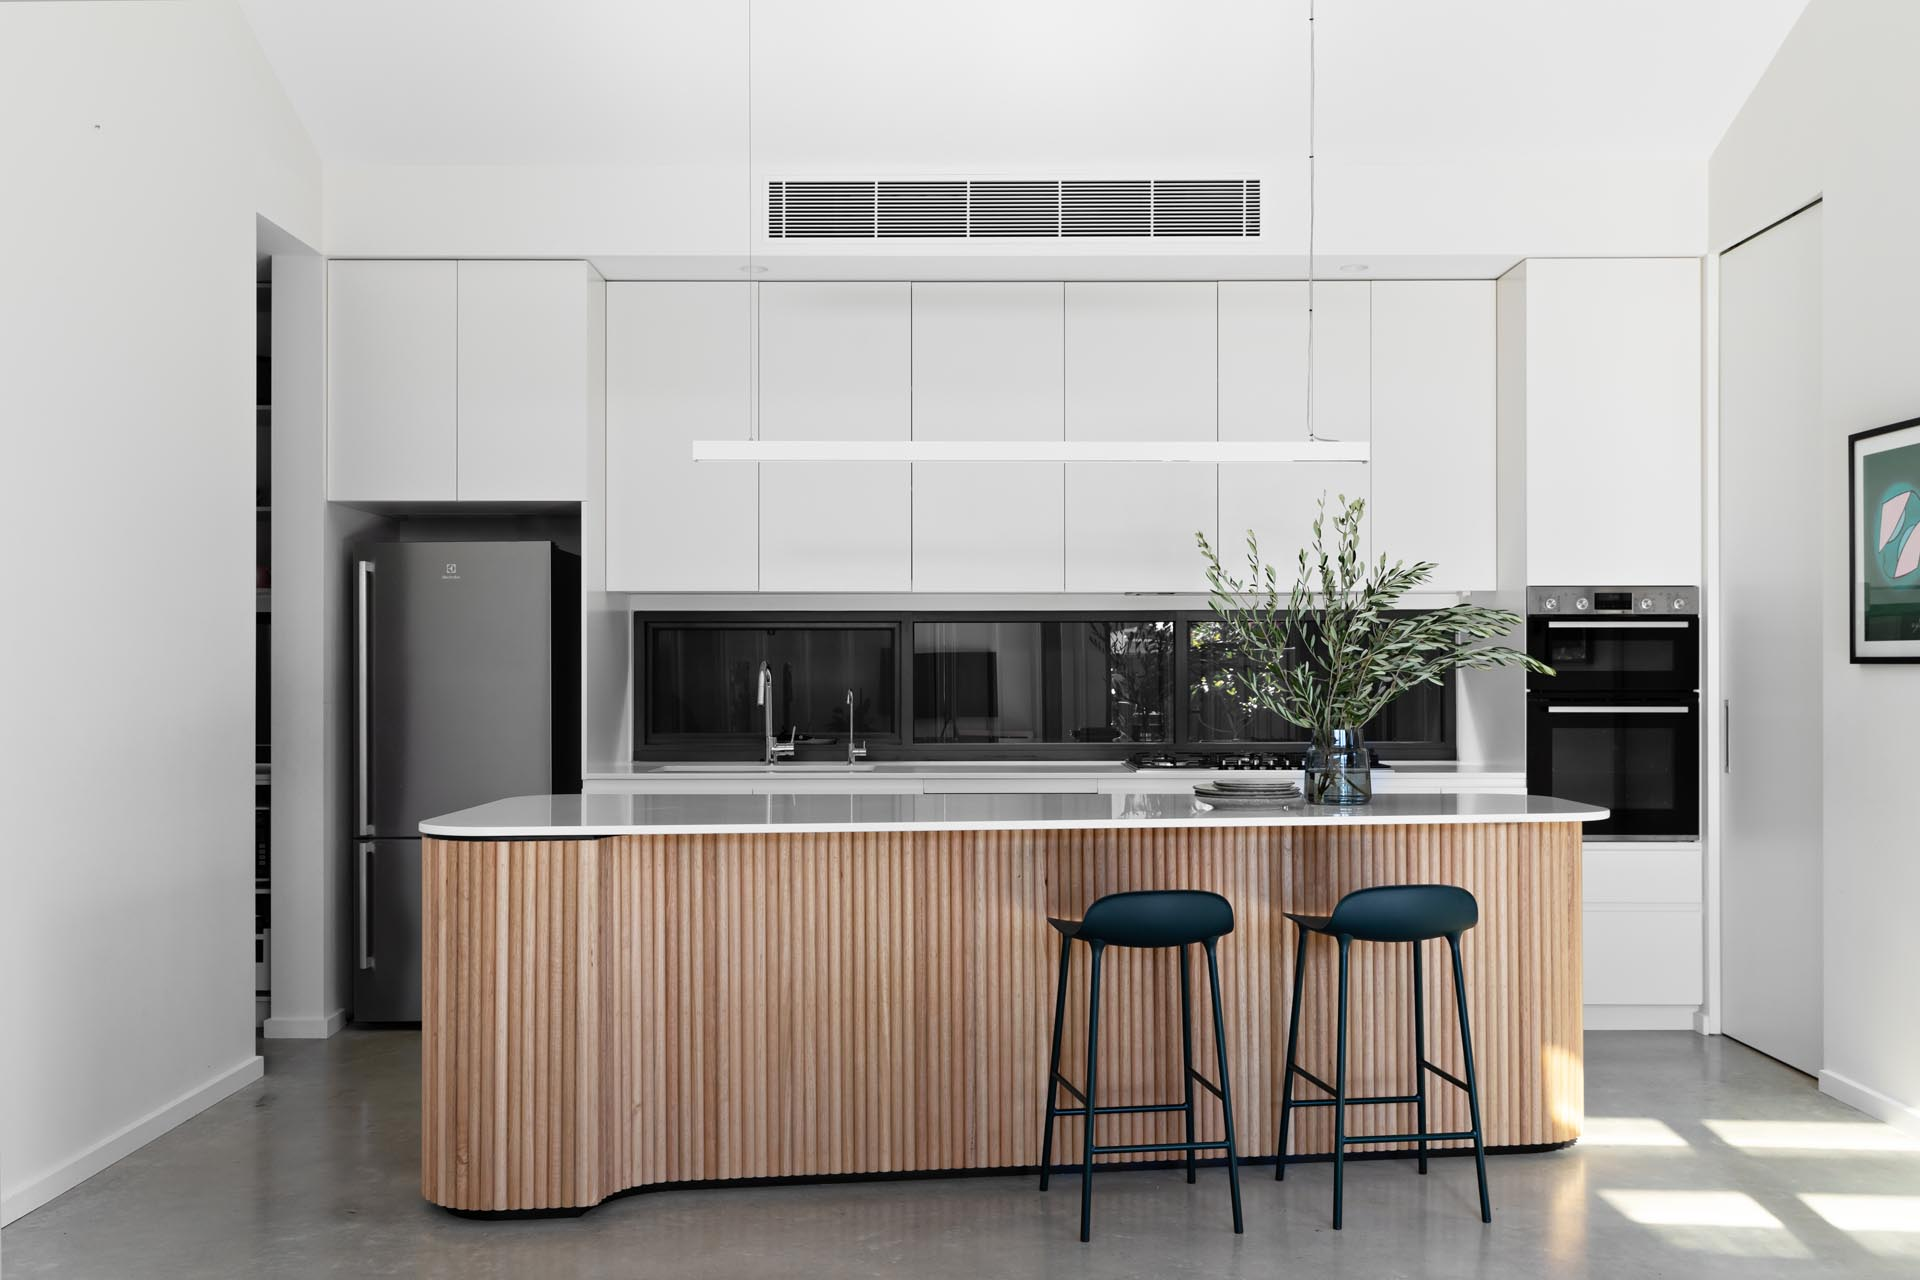 In this modern kitchen, there's minimalist white cabinets, concrete floors, a glass backsplash, and an island with wood facade.